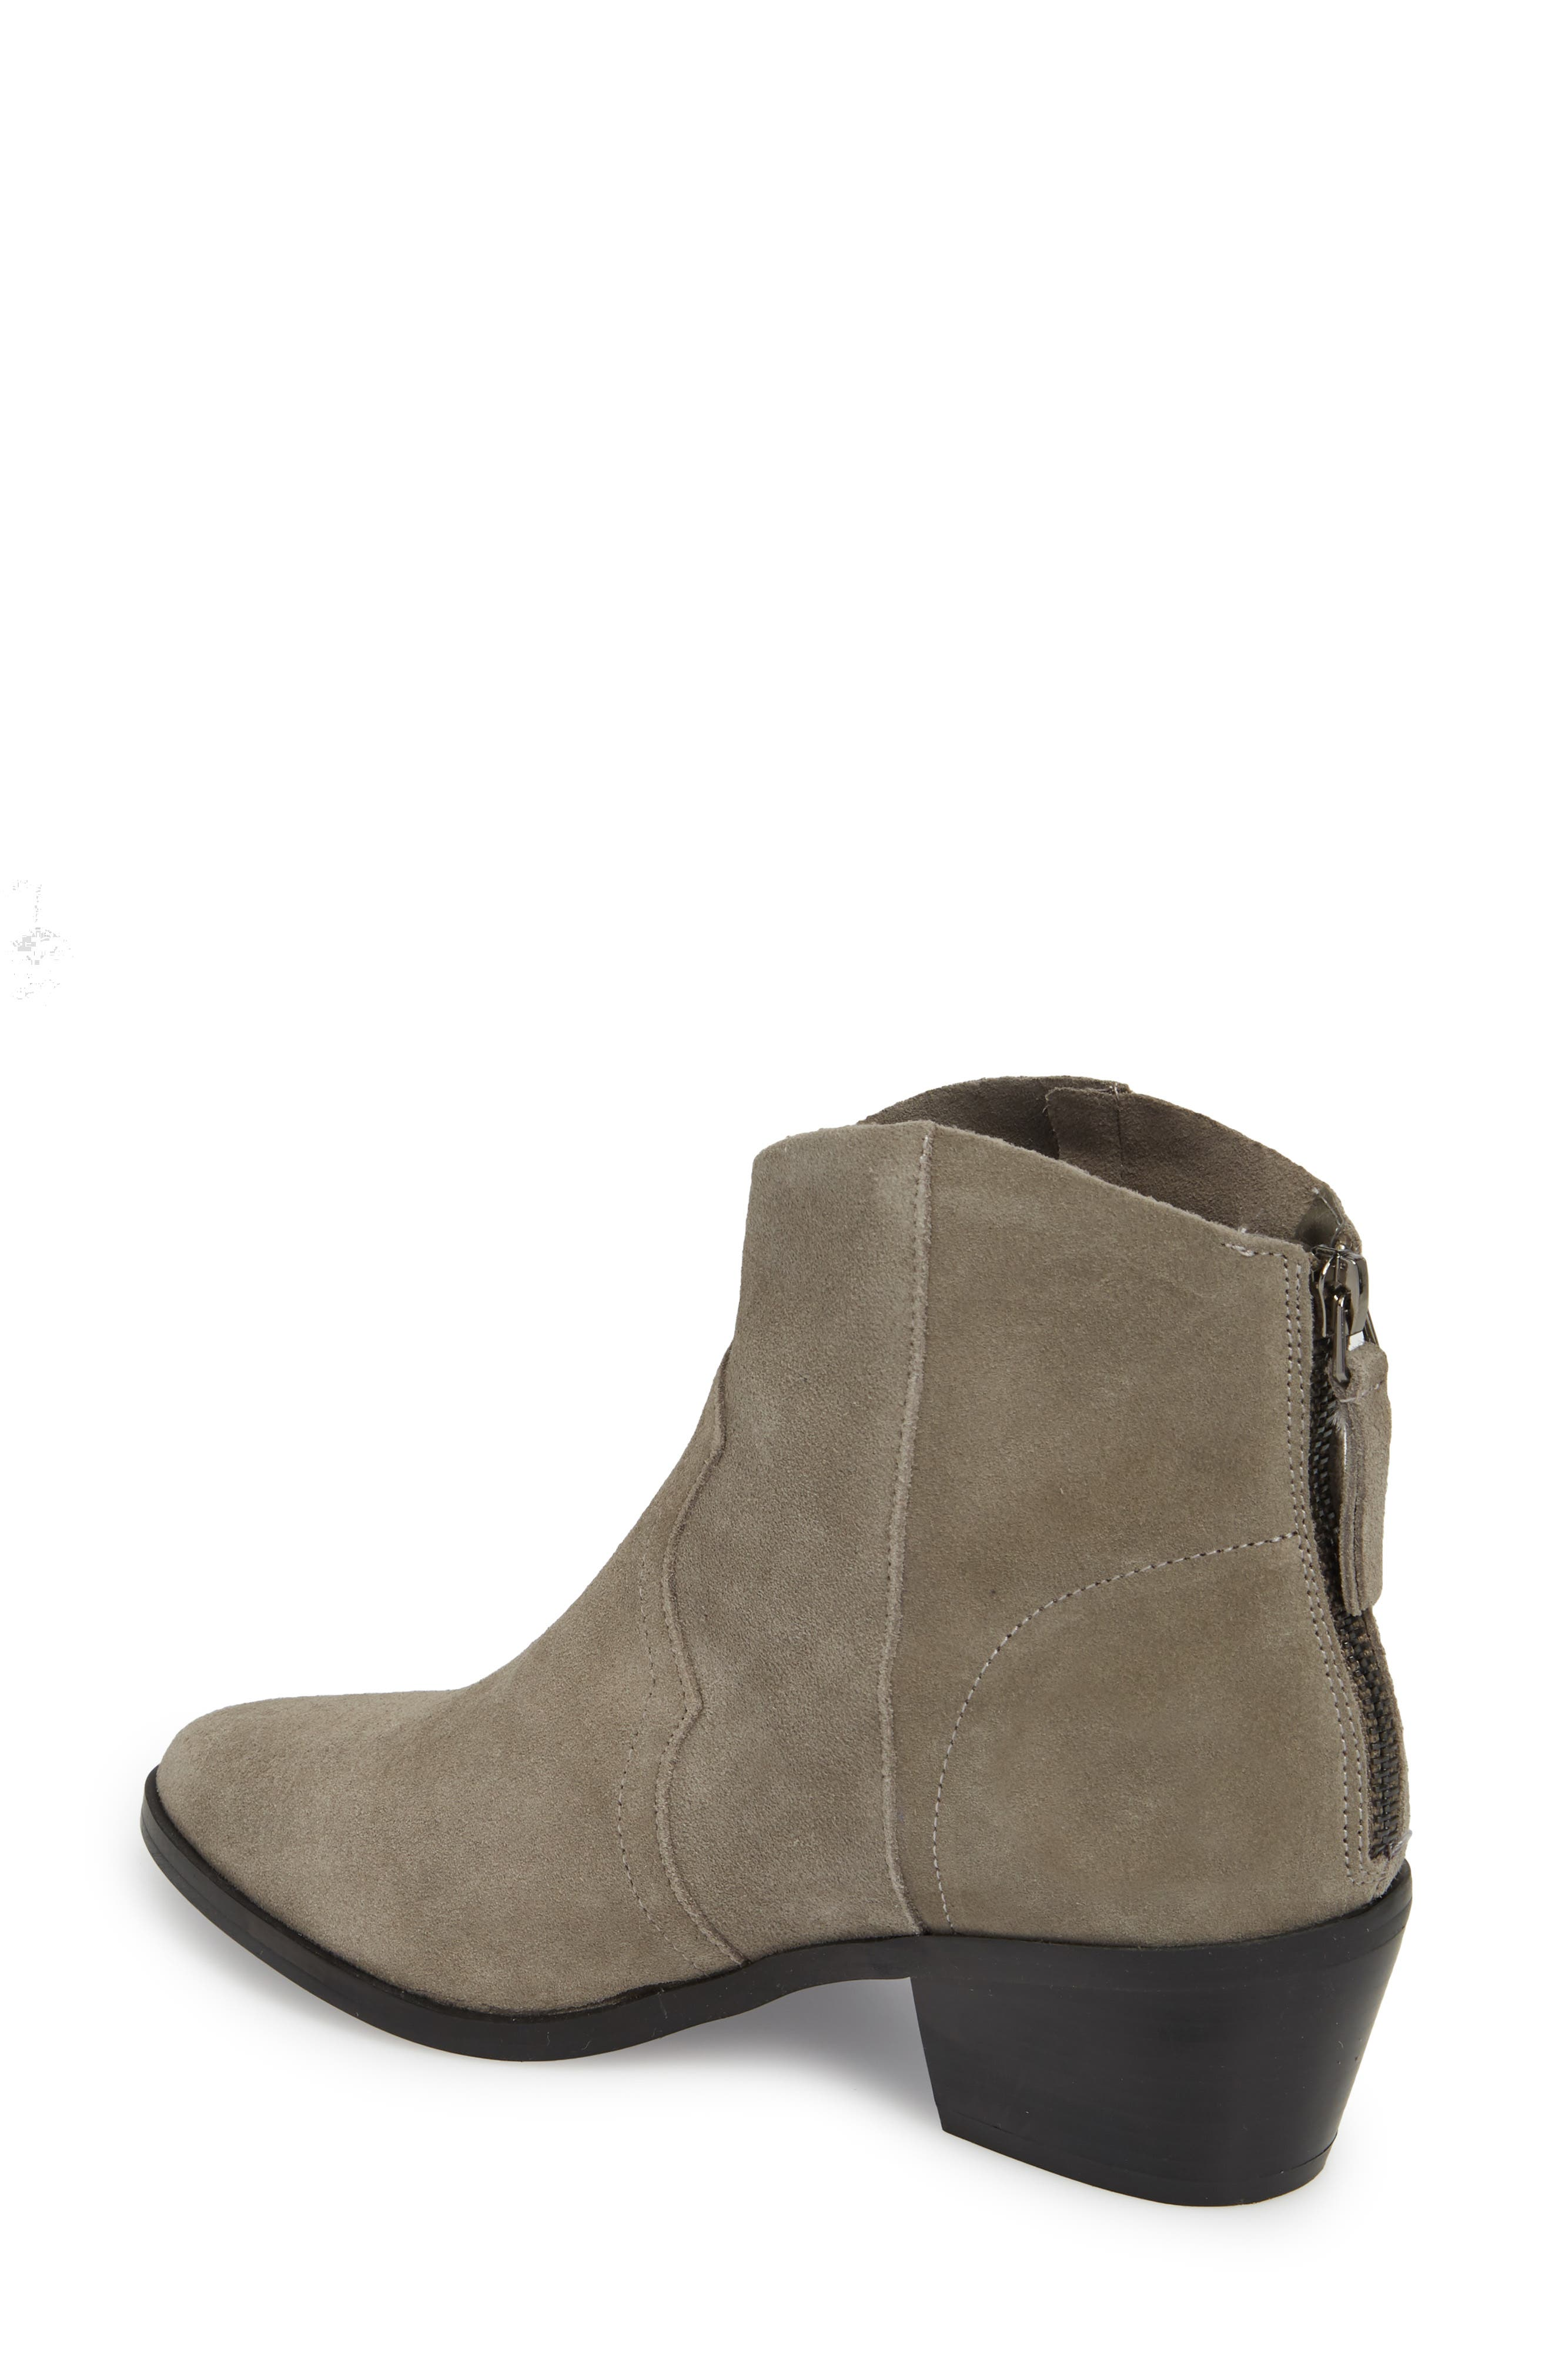 Betty Western Bootie,                             Alternate thumbnail 2, color,                             GREY